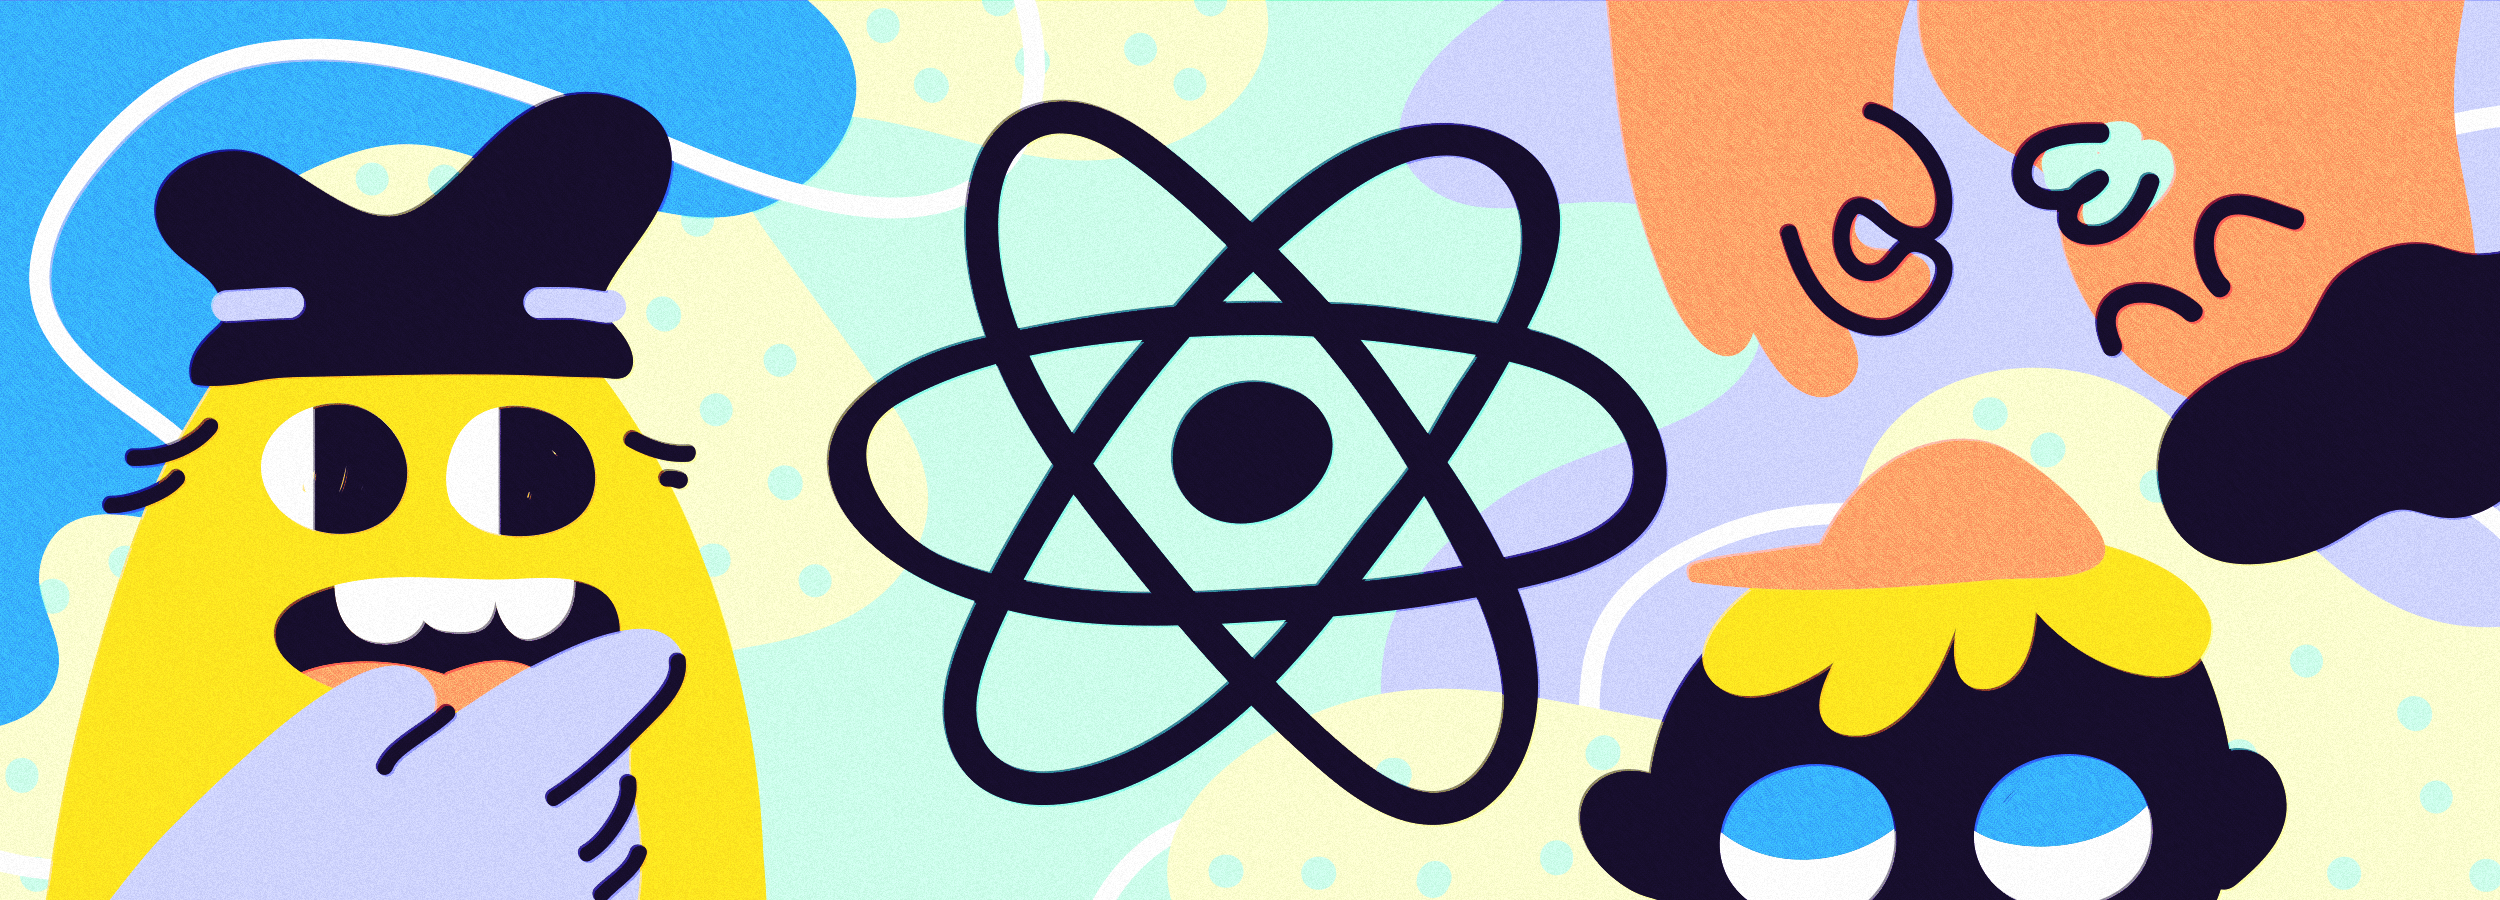 Why Discord is Sticking with React Native - Discord Blog